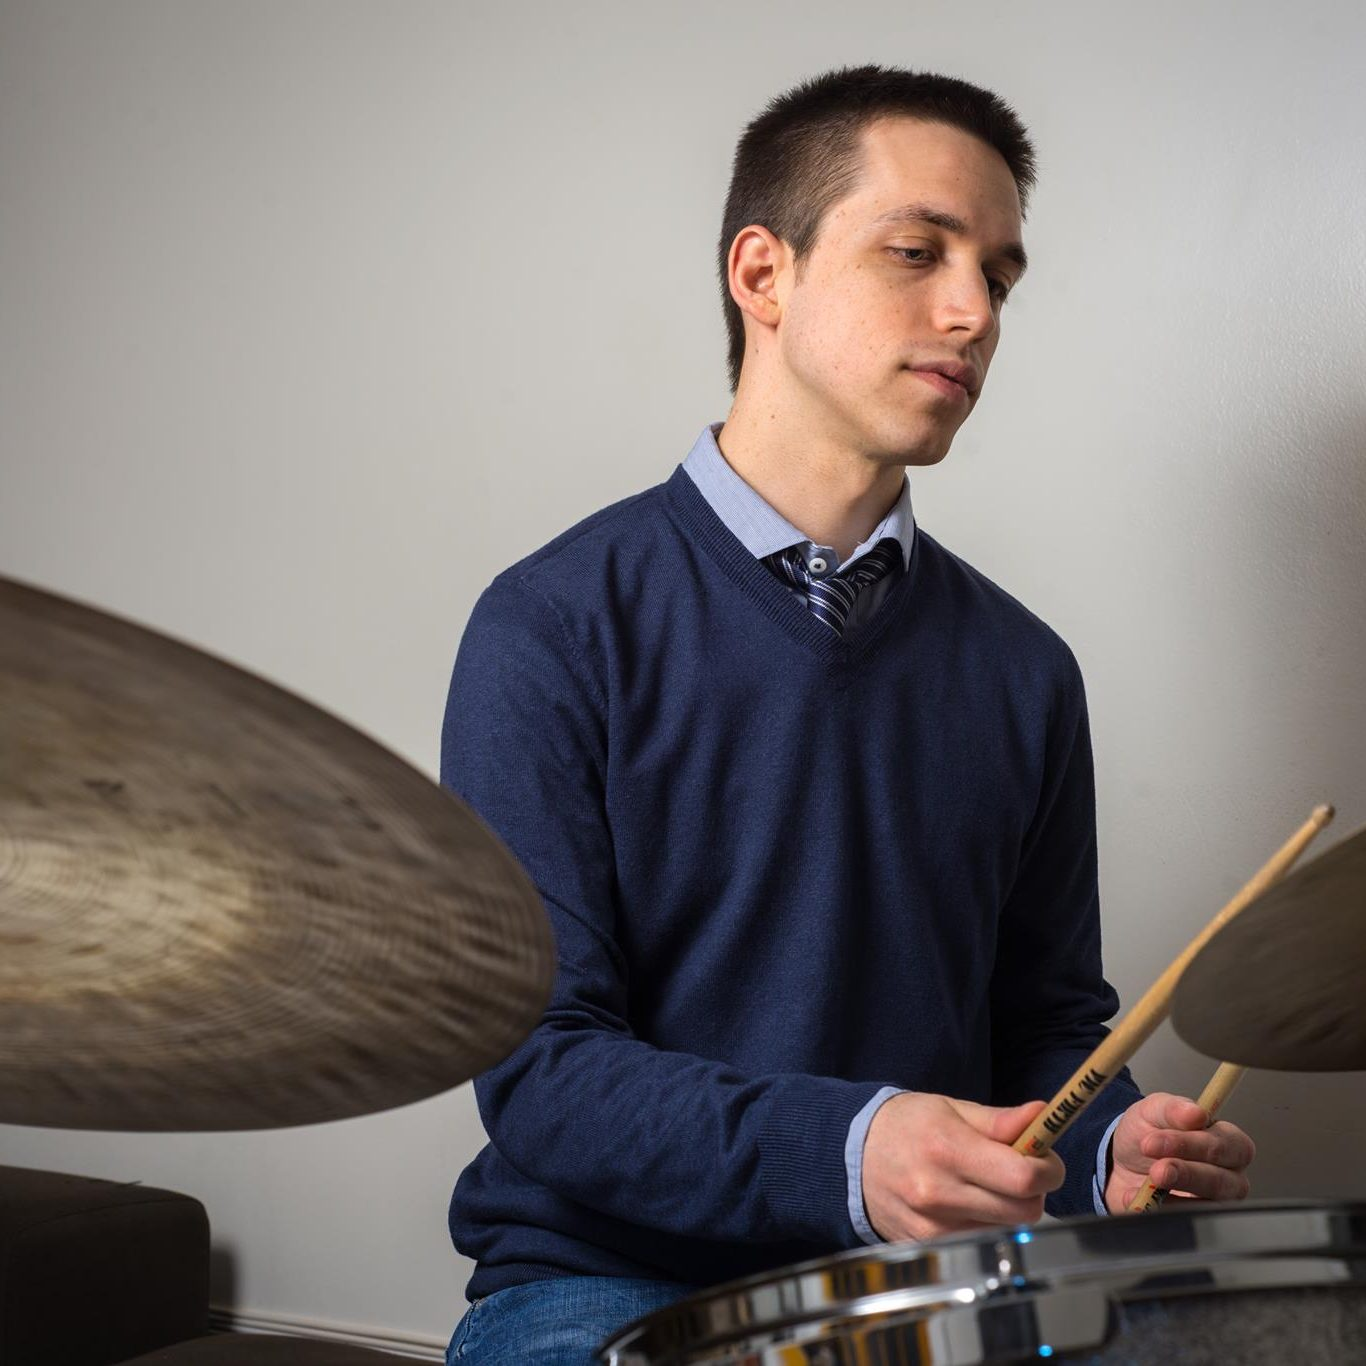 Steve Picataggio Portrait two (behind the kit)